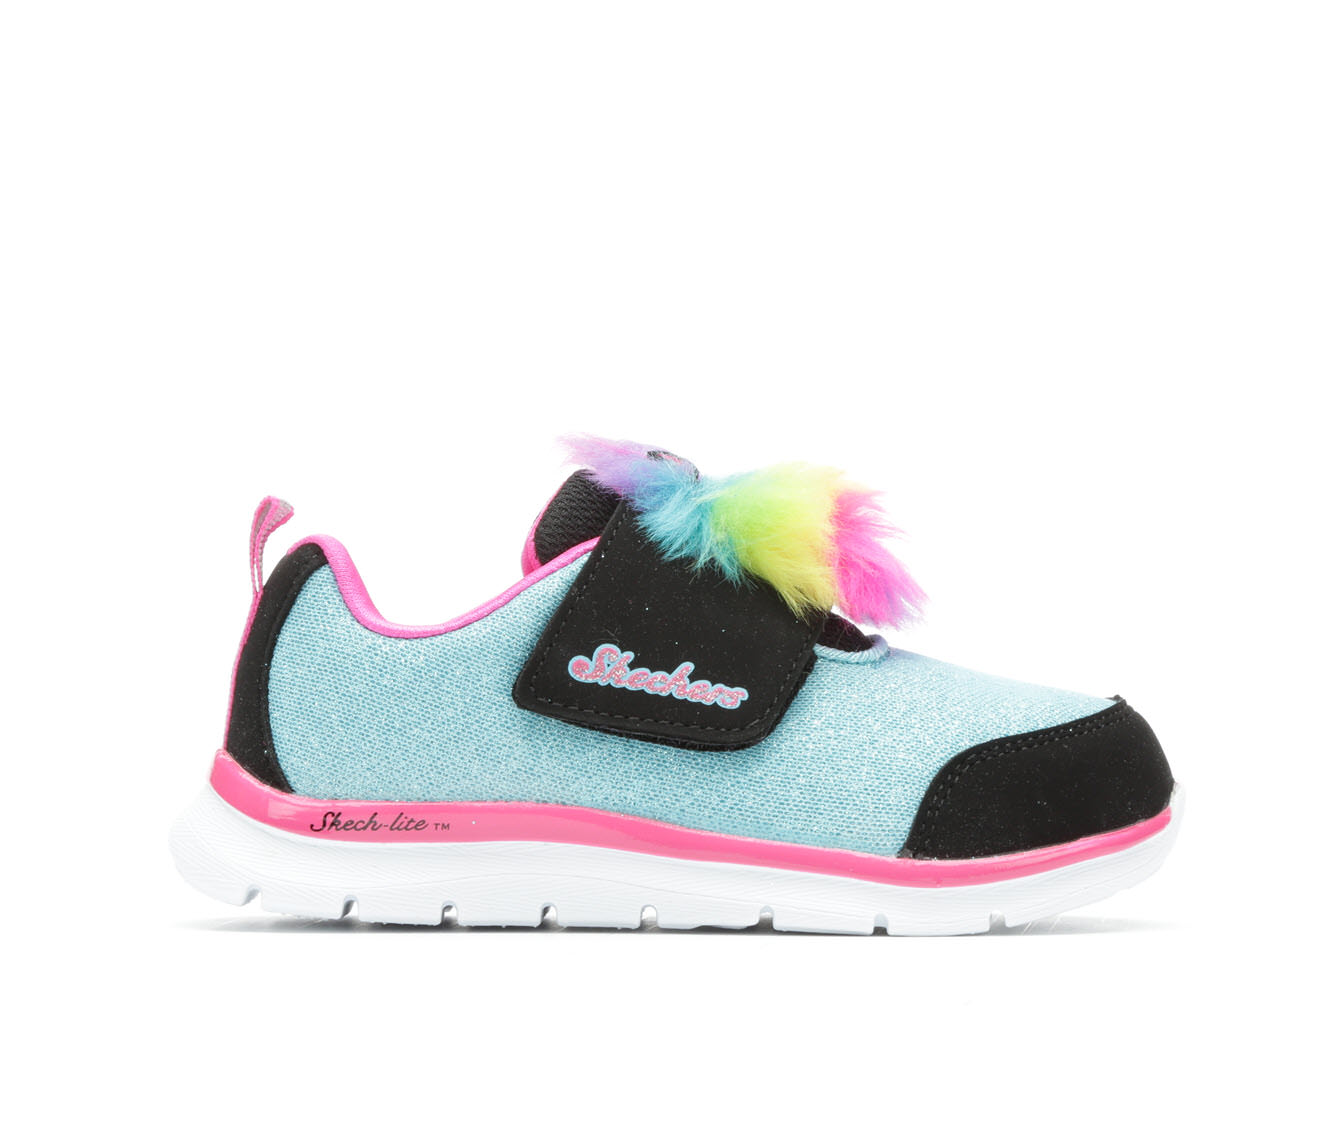 Girls' Skechers Infant Skech-Lite Furry- Lil Creature Sneakers (Multicolor)